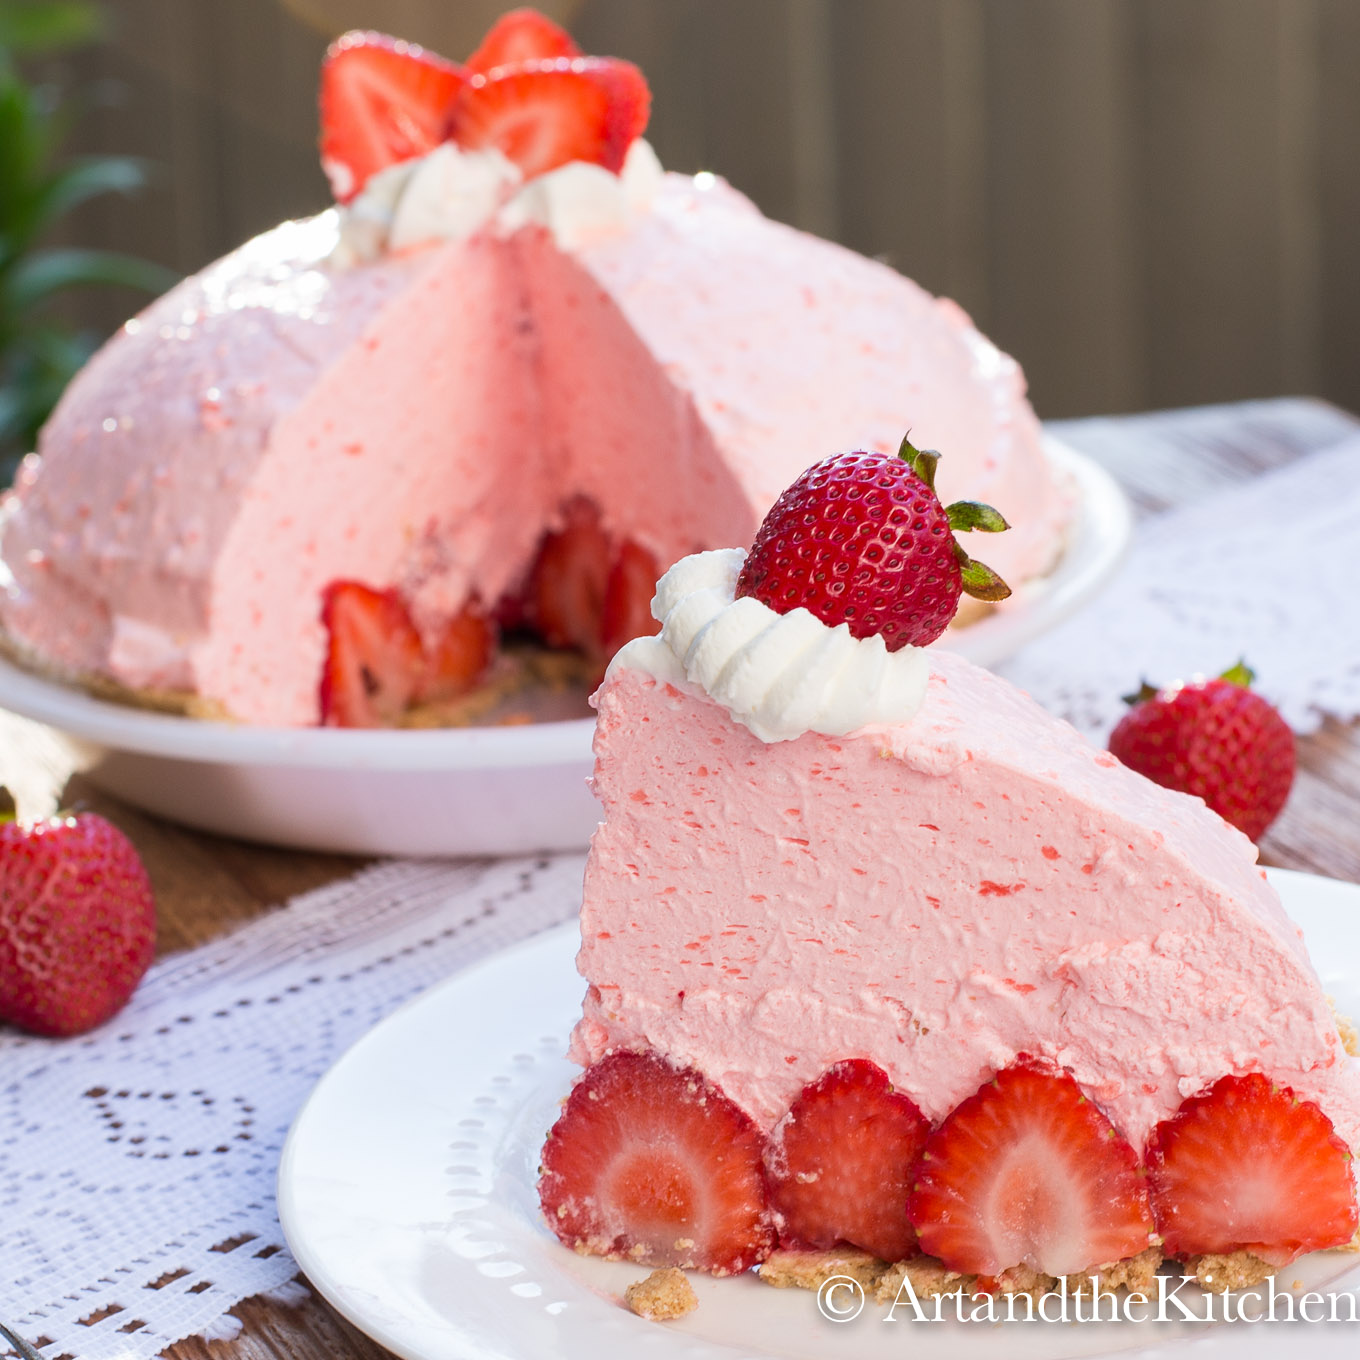 Slice of tall no-bake strawberry pie with fresh strawberries with whole pie in background.